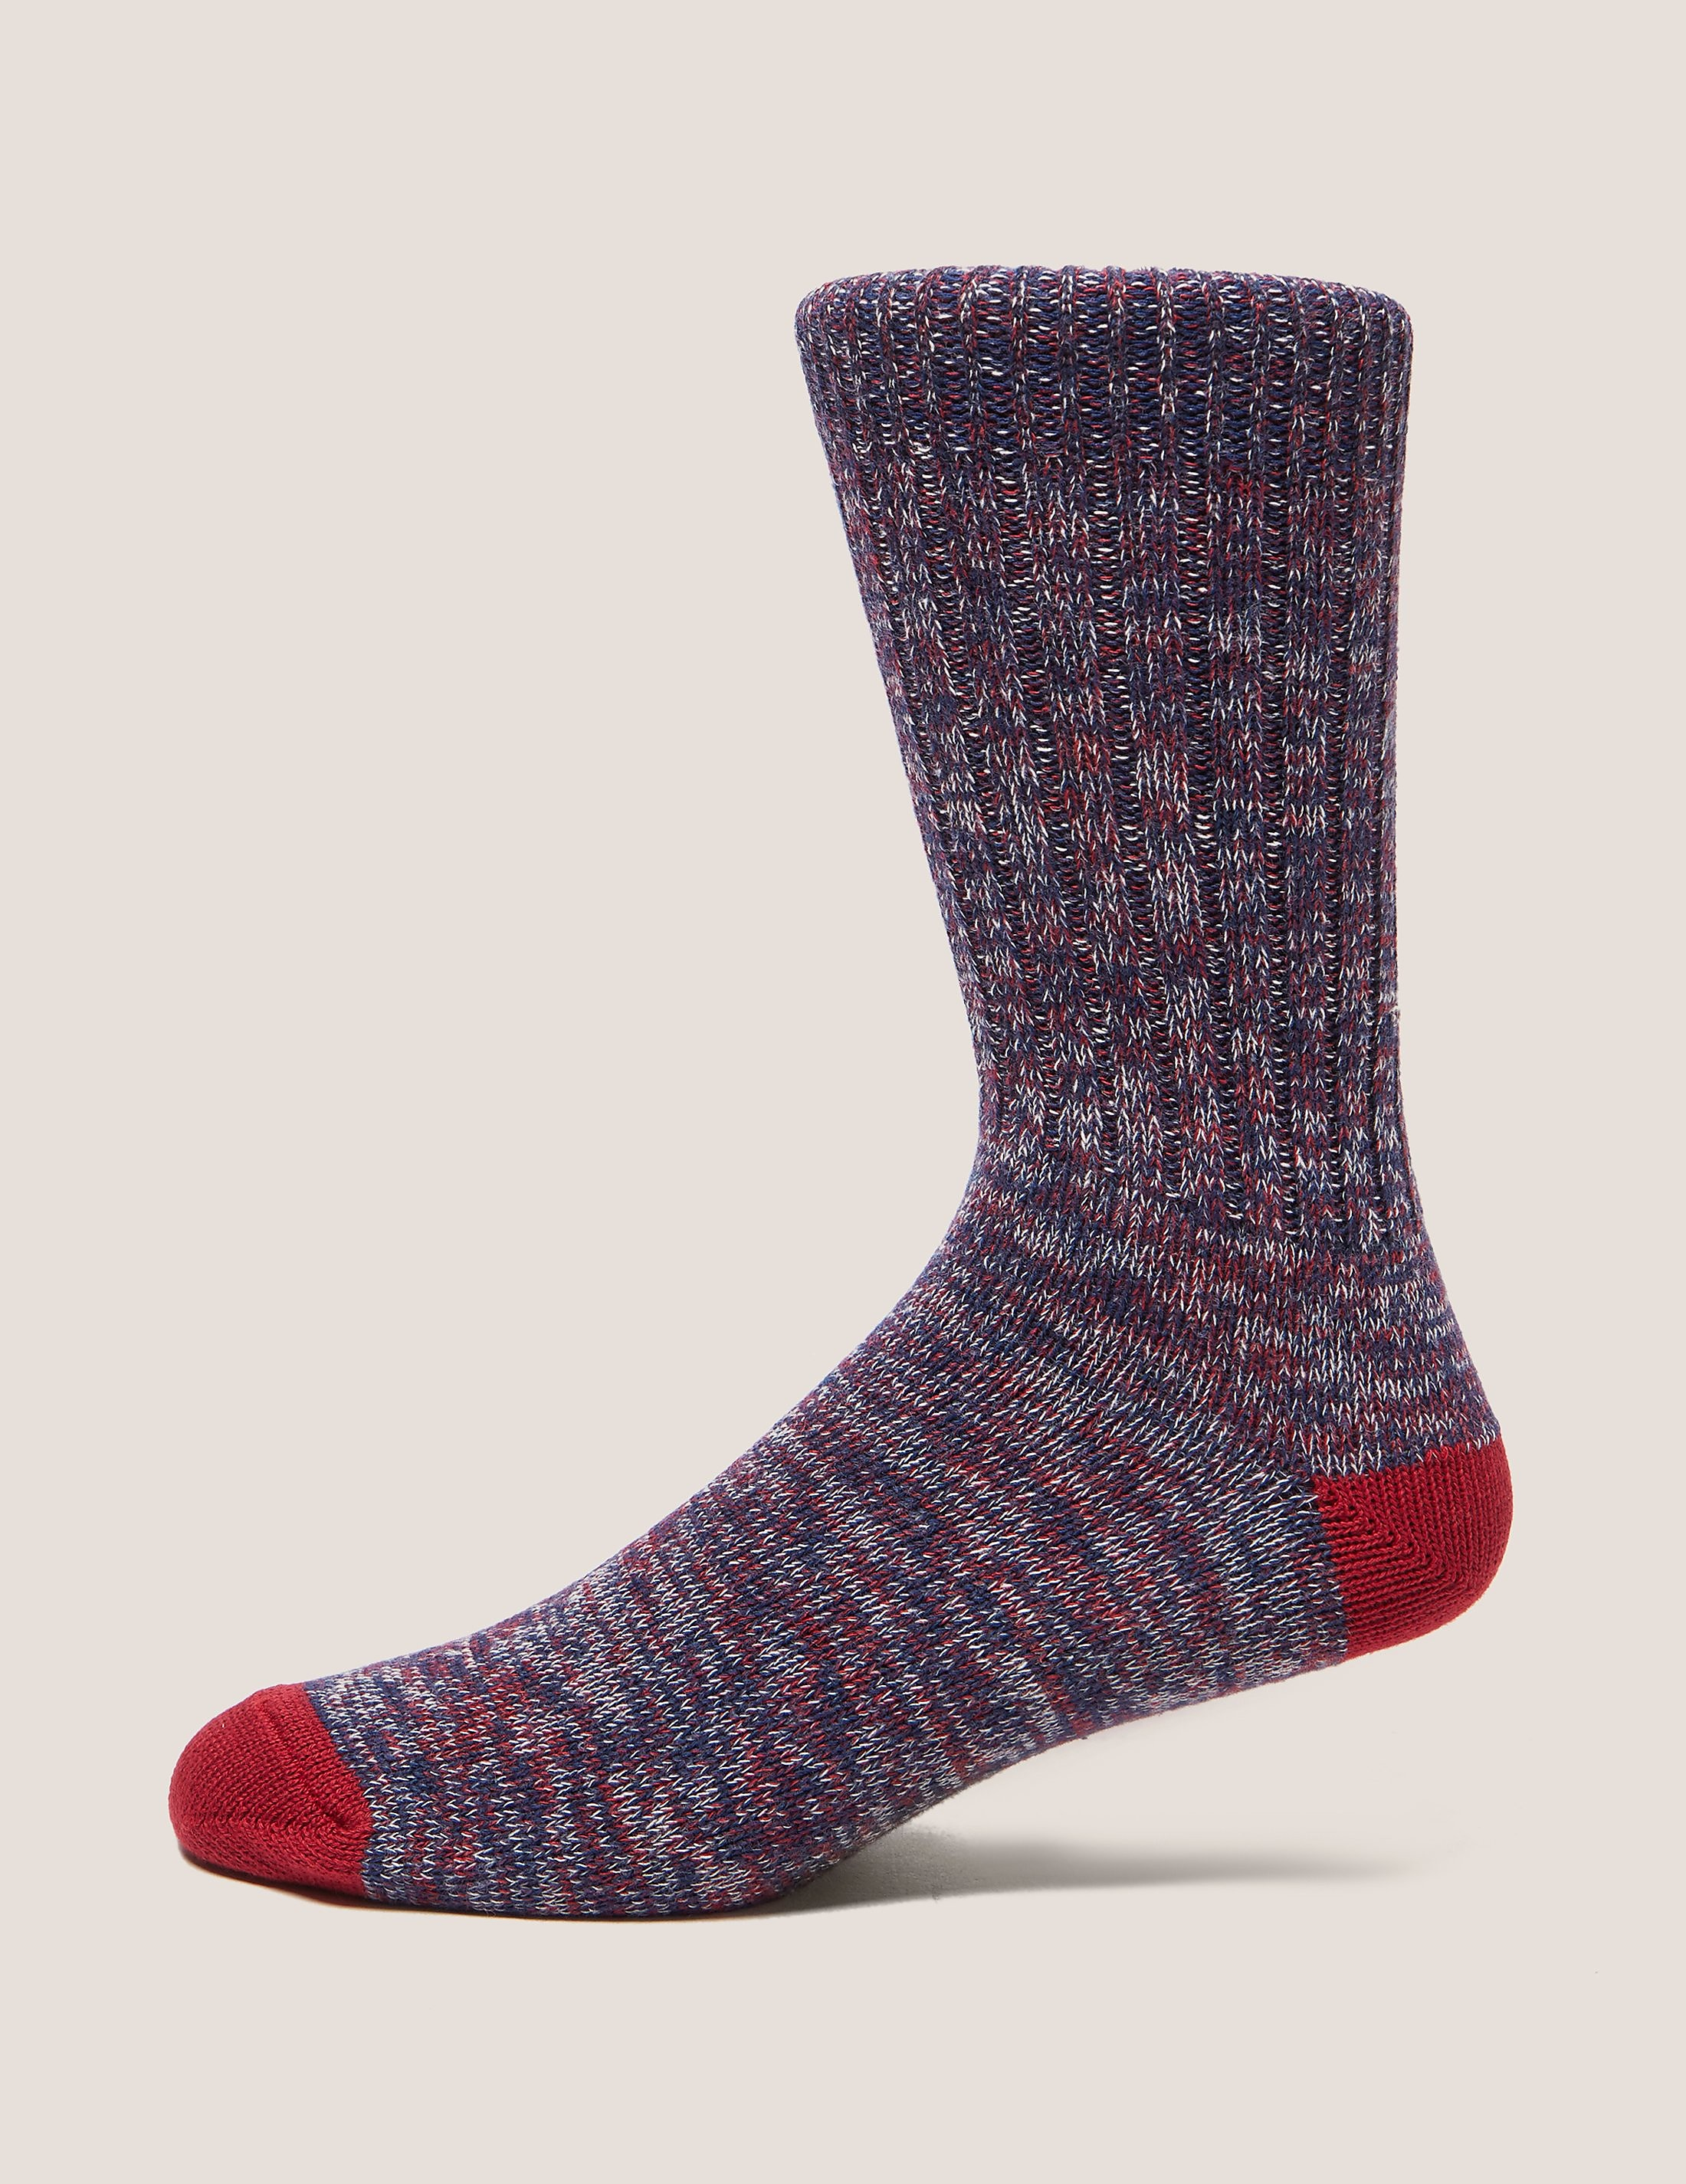 Barbour Deck Socks